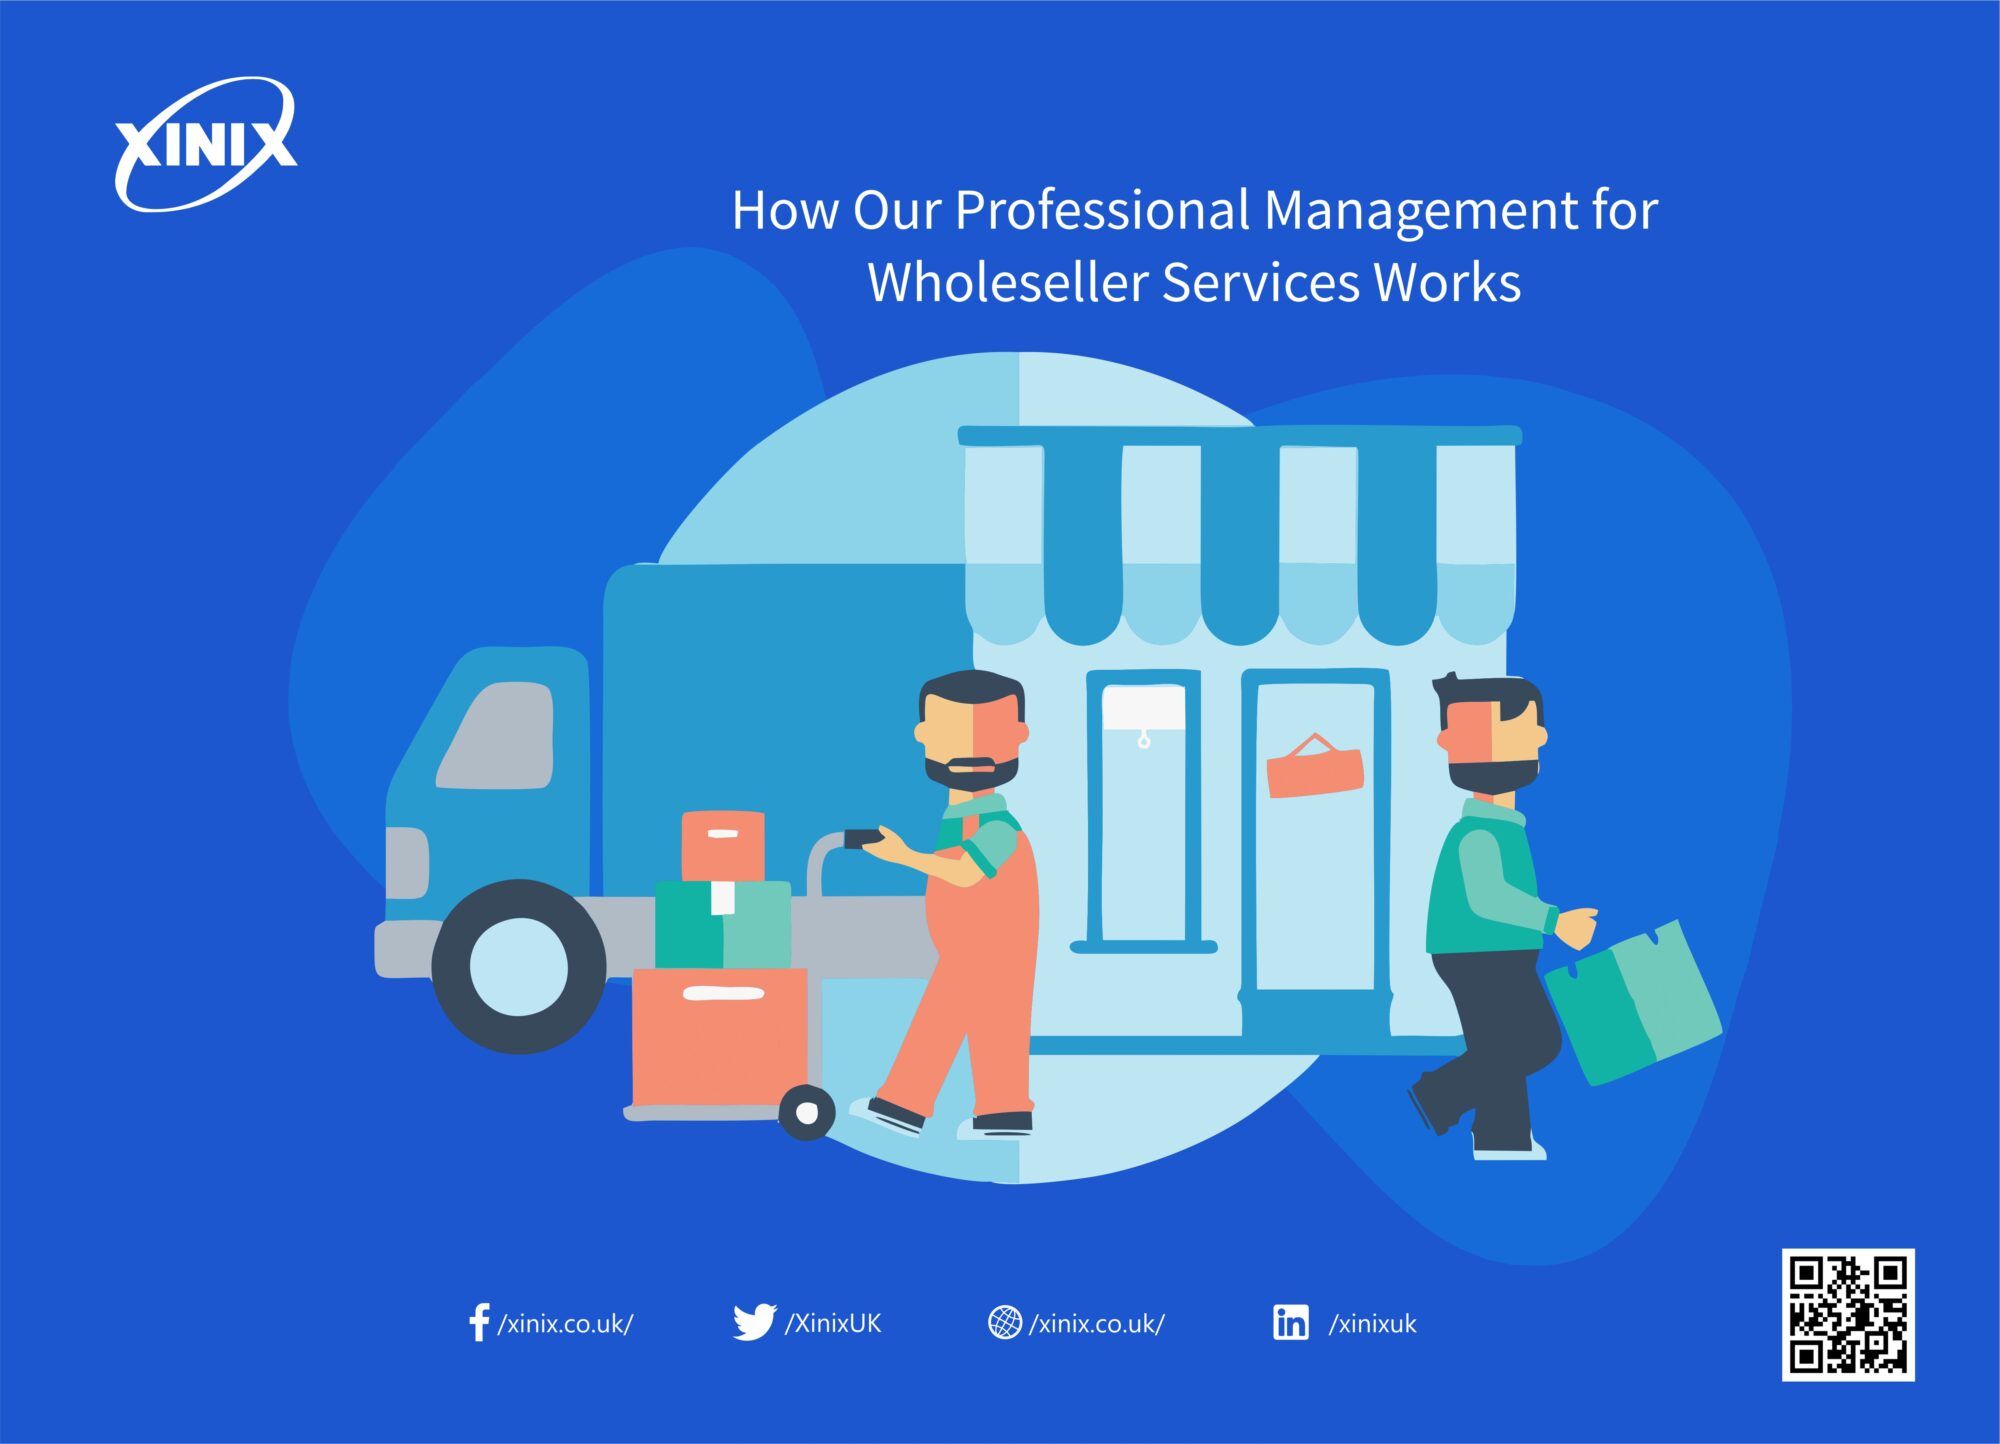 How Our Professional Management for Wholeseller Services Works